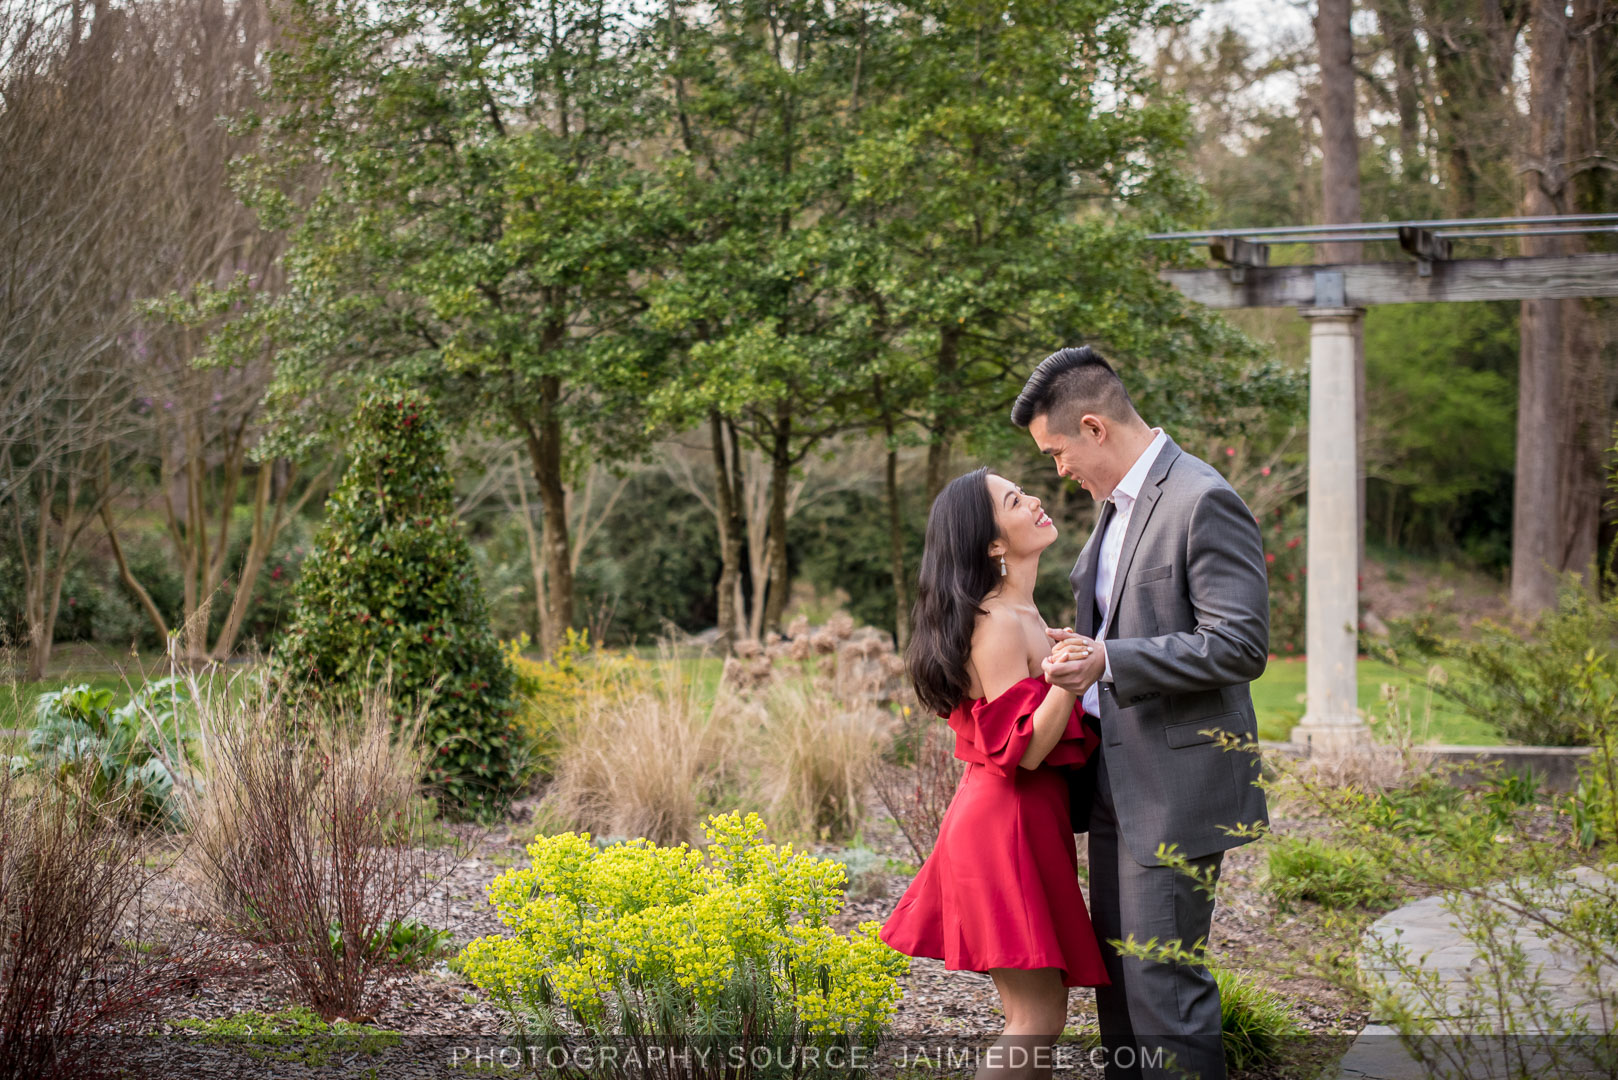 Cator-Woolford-Gardens-Engagement-Pictures-Photography-0023